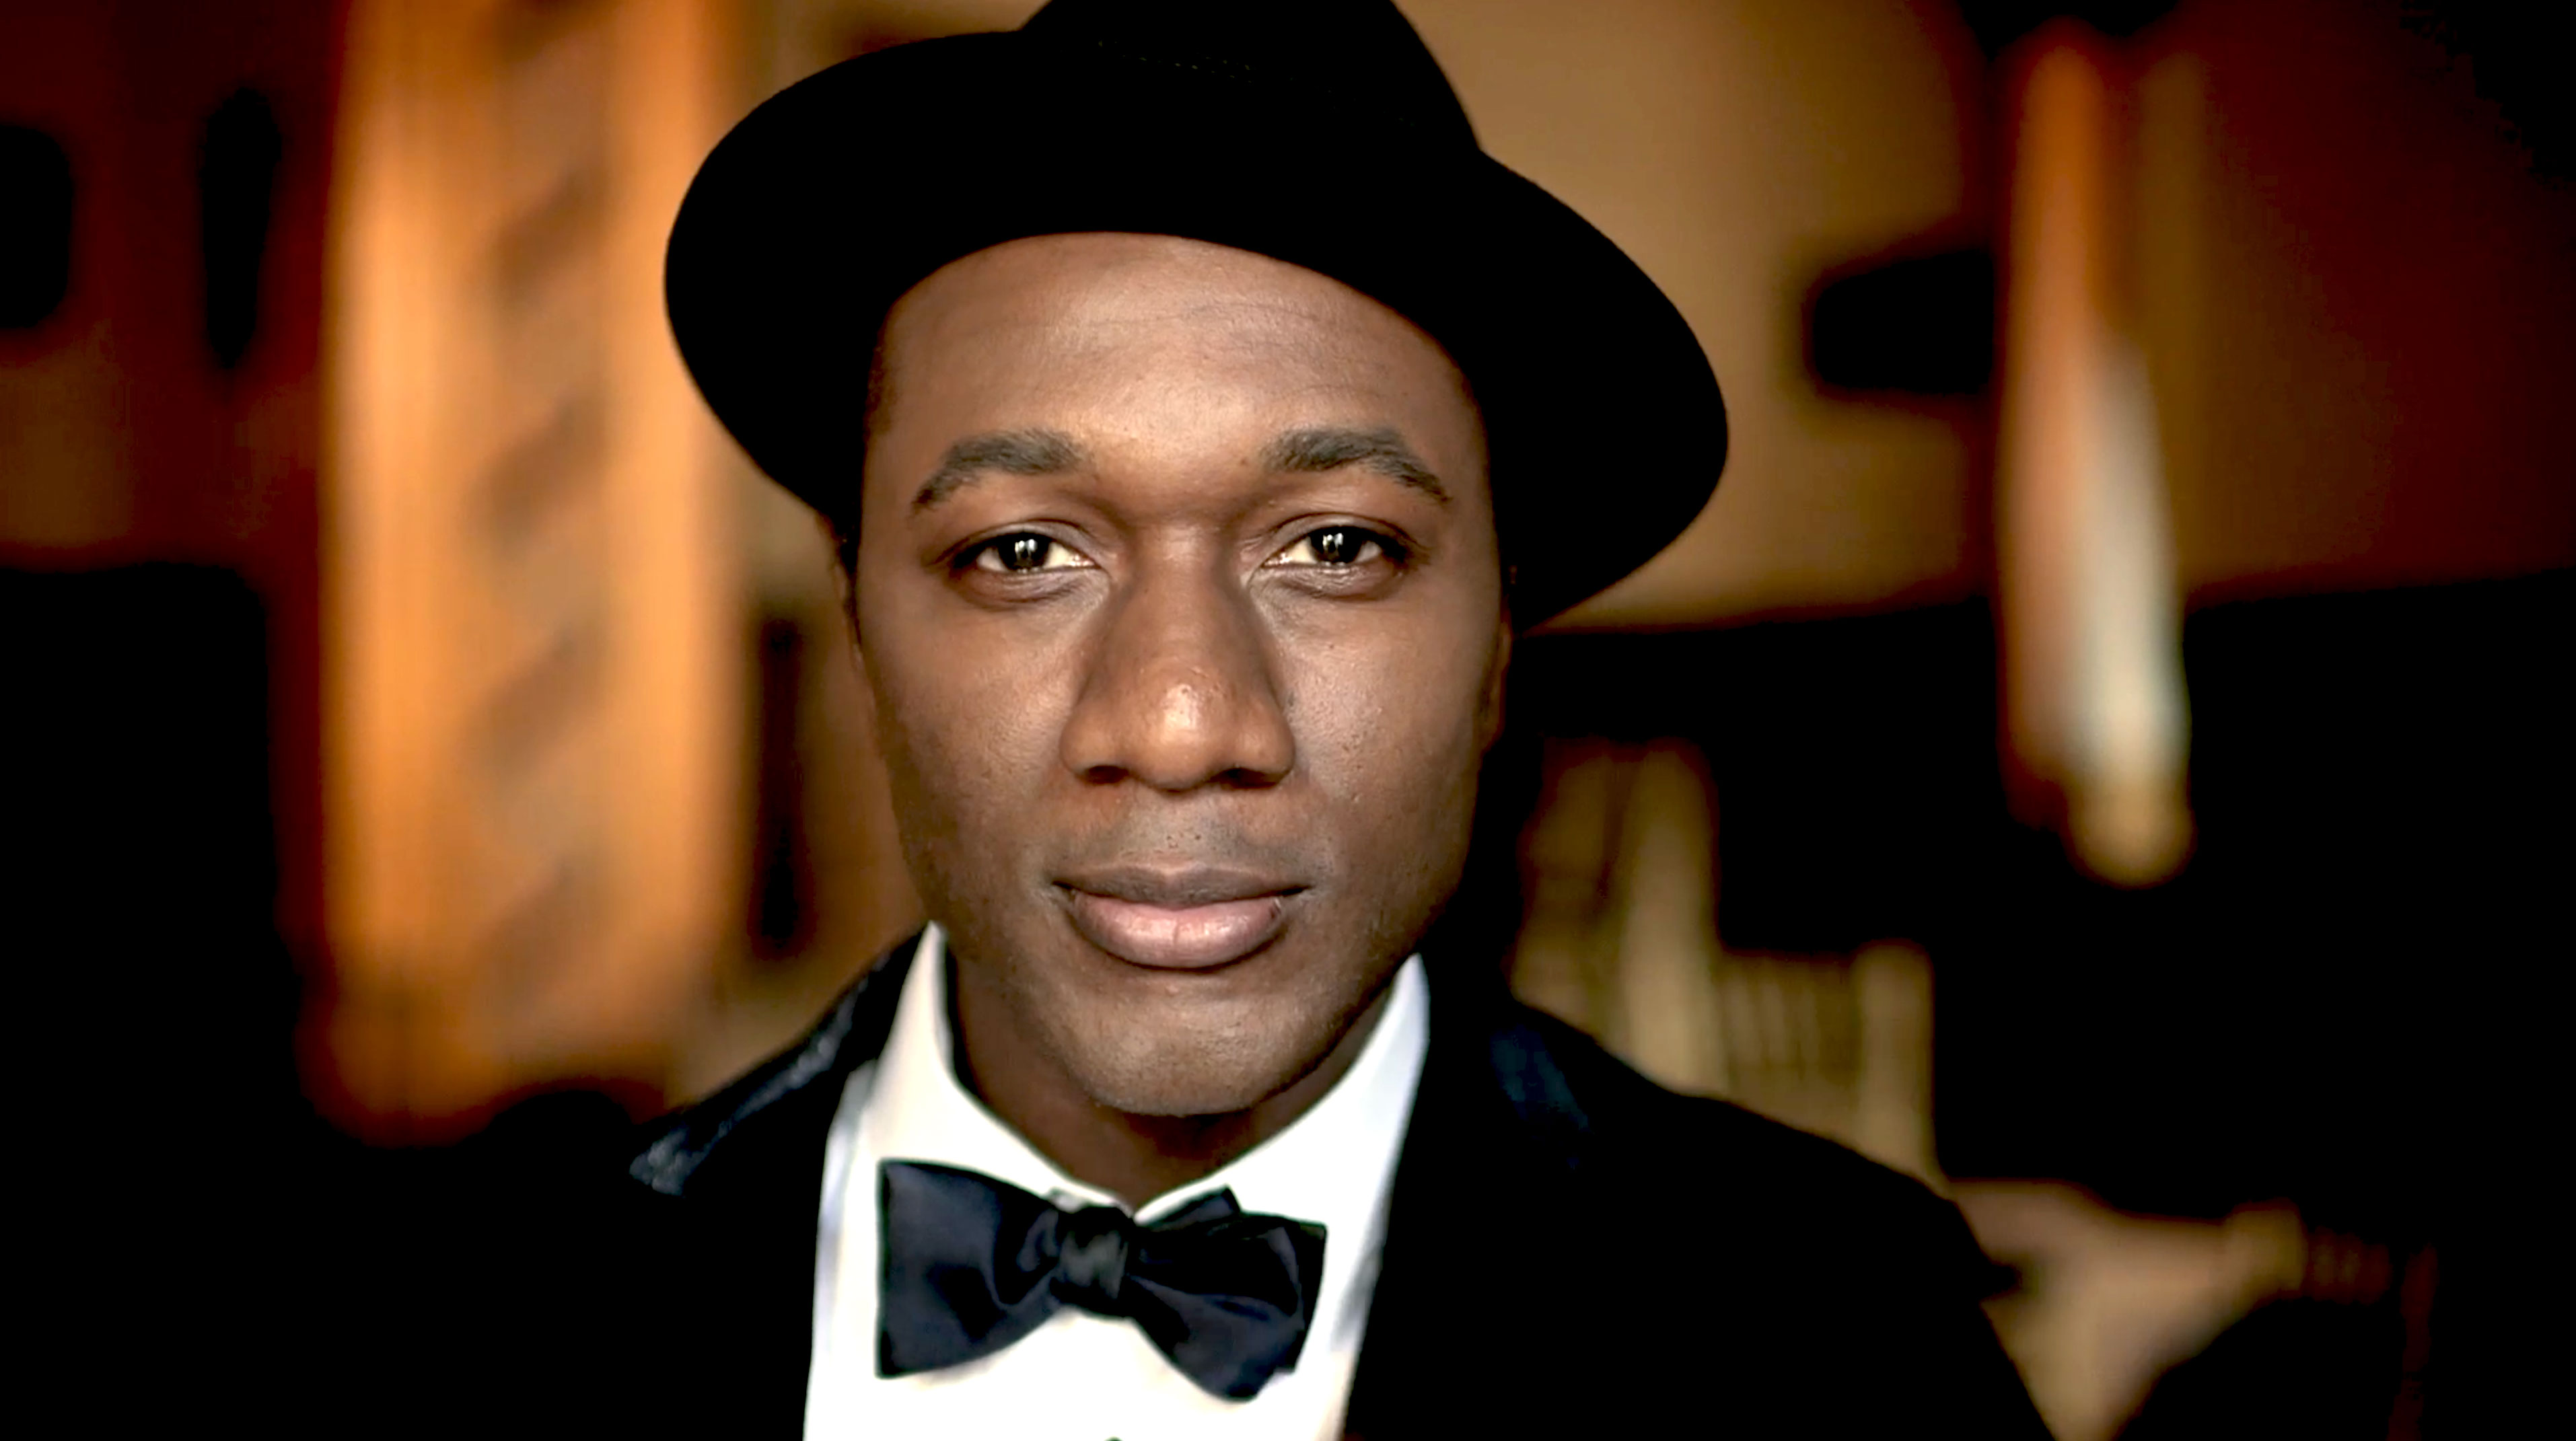 Lincoln Aloe Blacc